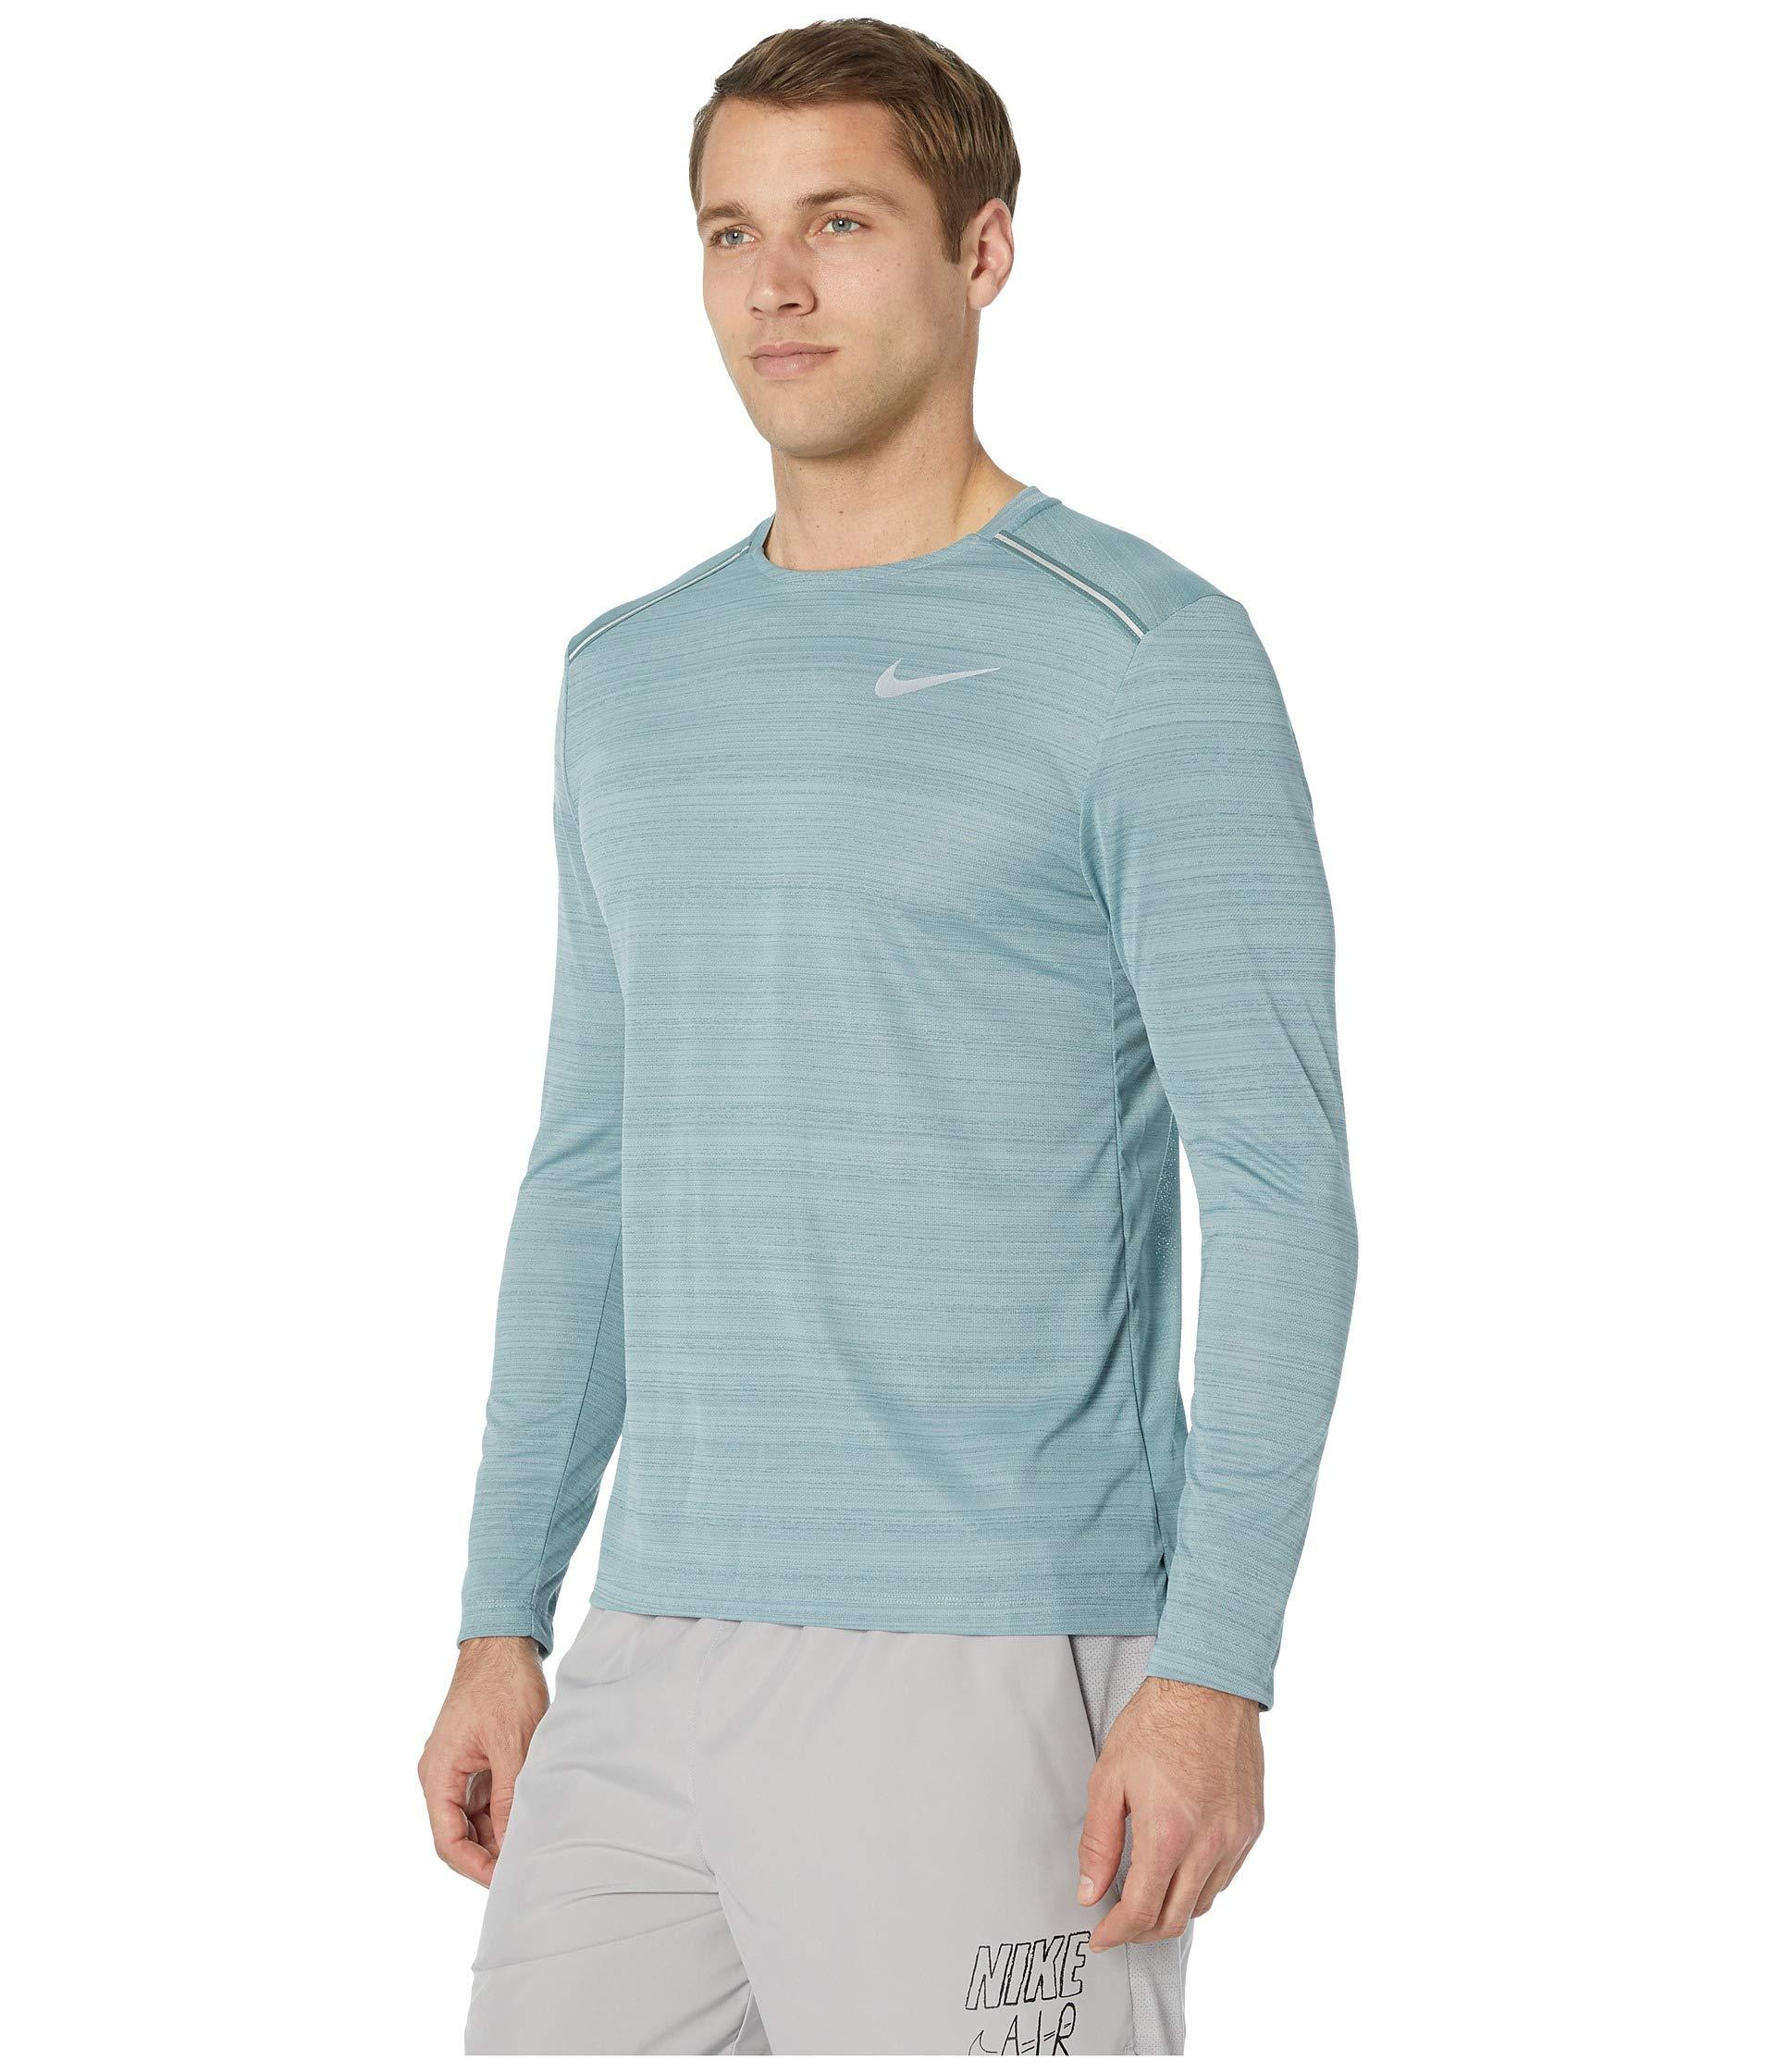 9eeb21a8 Lyst - Nike Dry Miler Top Long Sleeve in Blue for Men - Save 13%